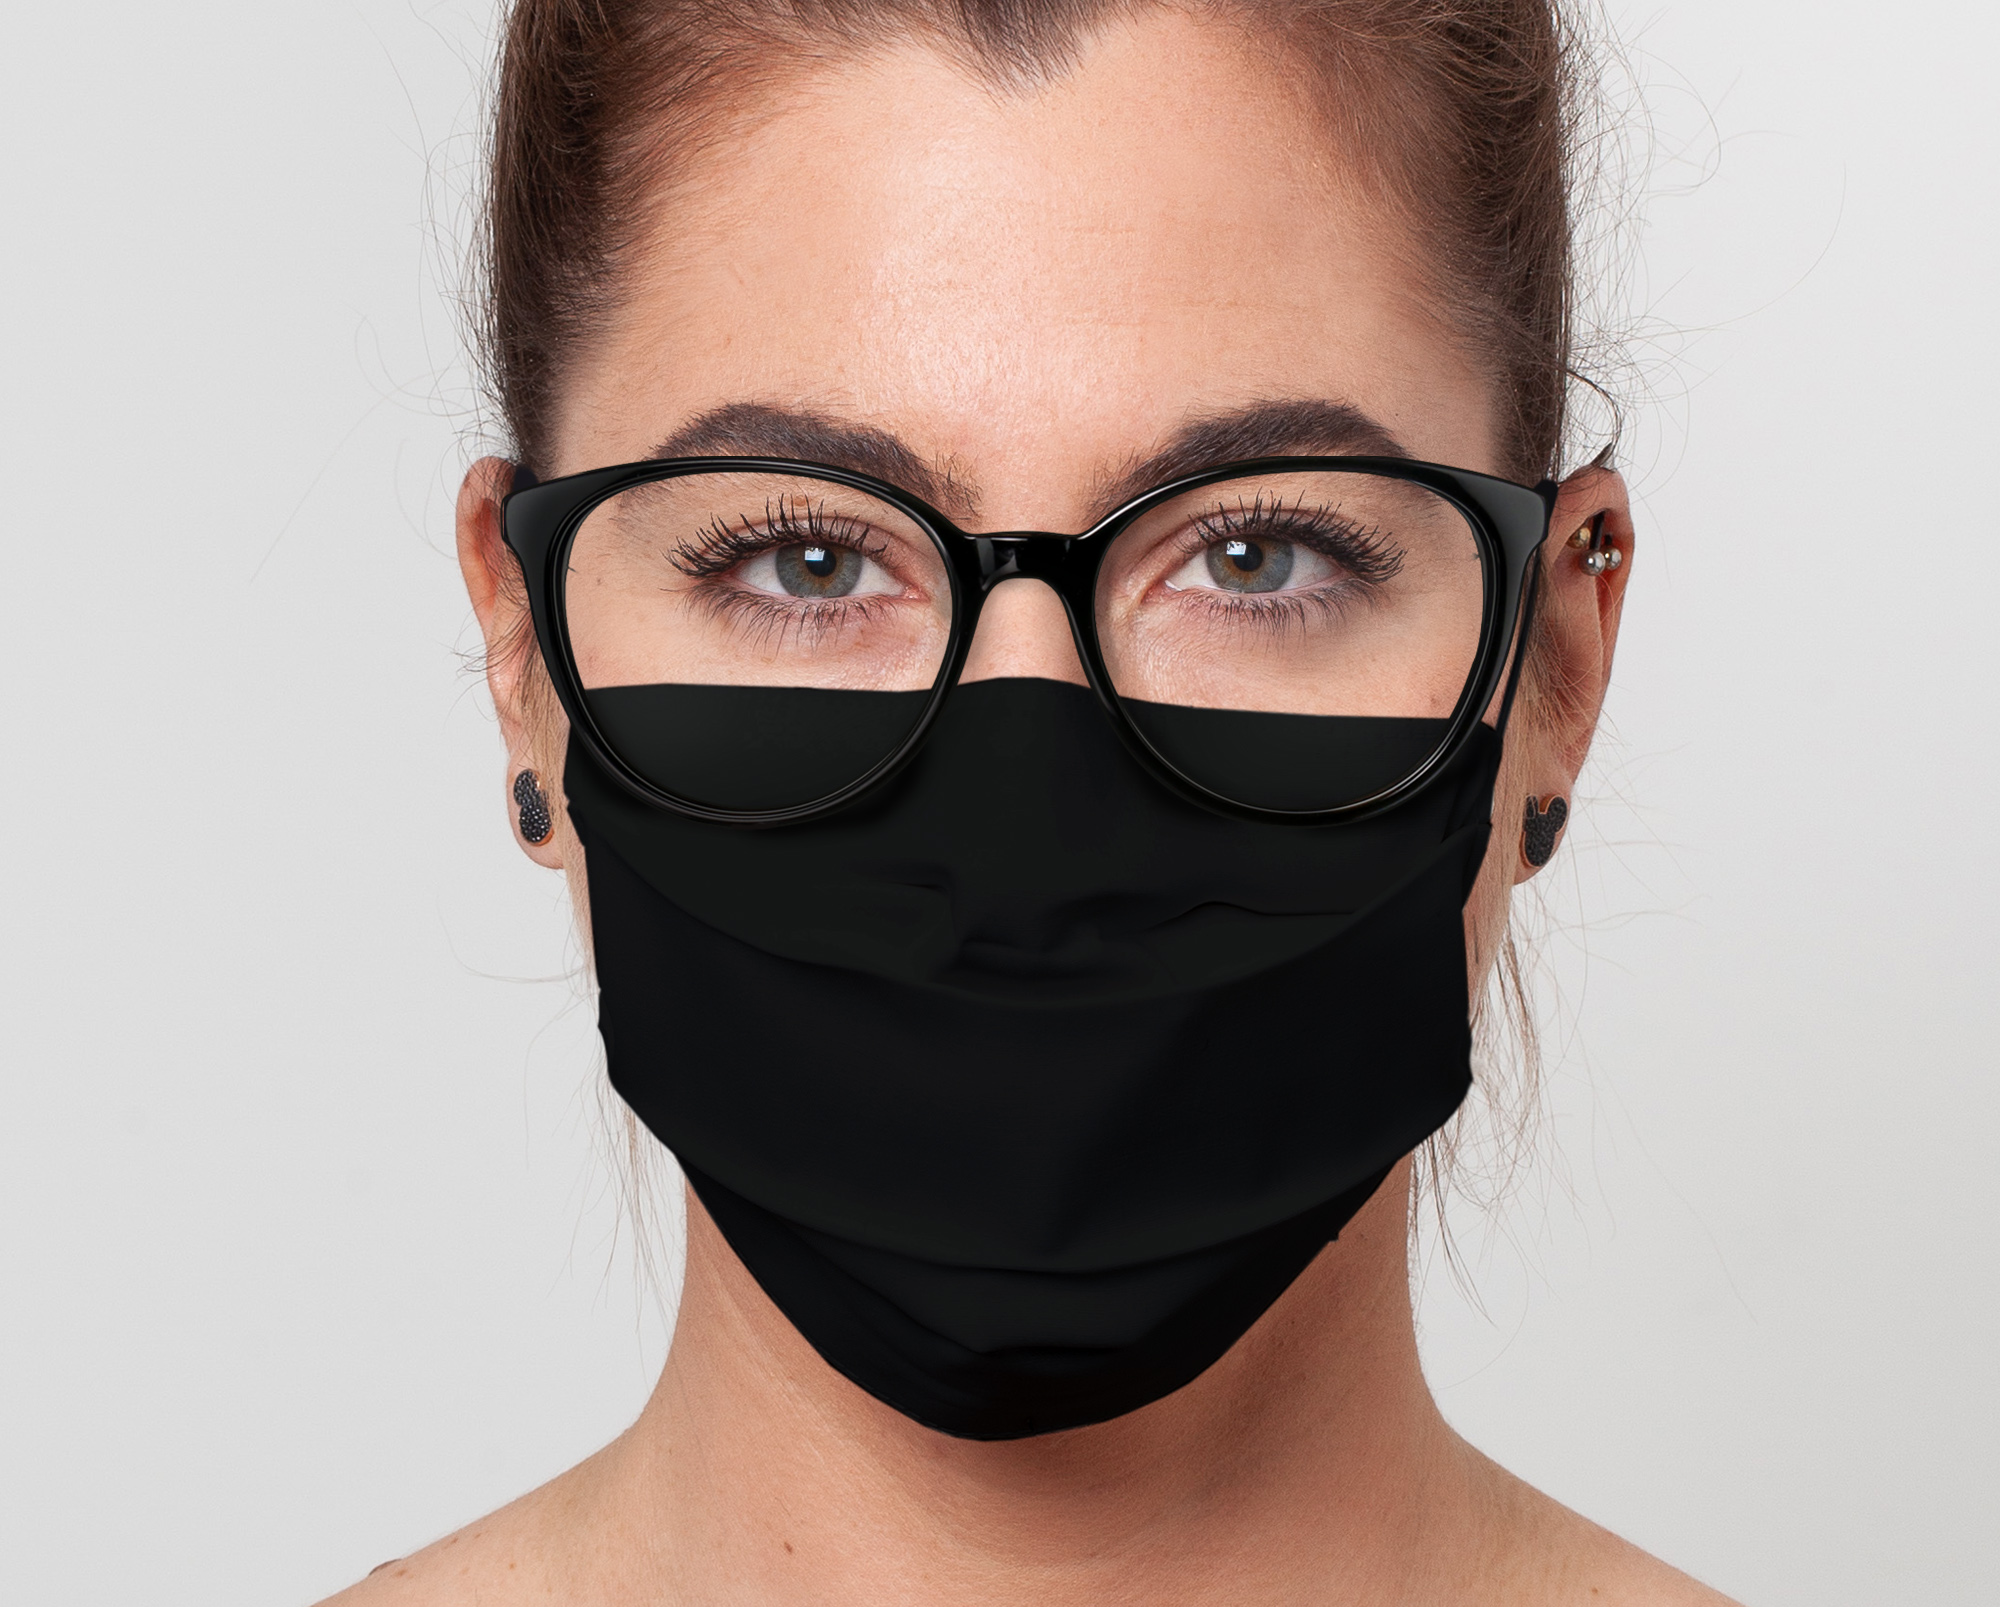 Cotton Face Mask For Glasses, Black